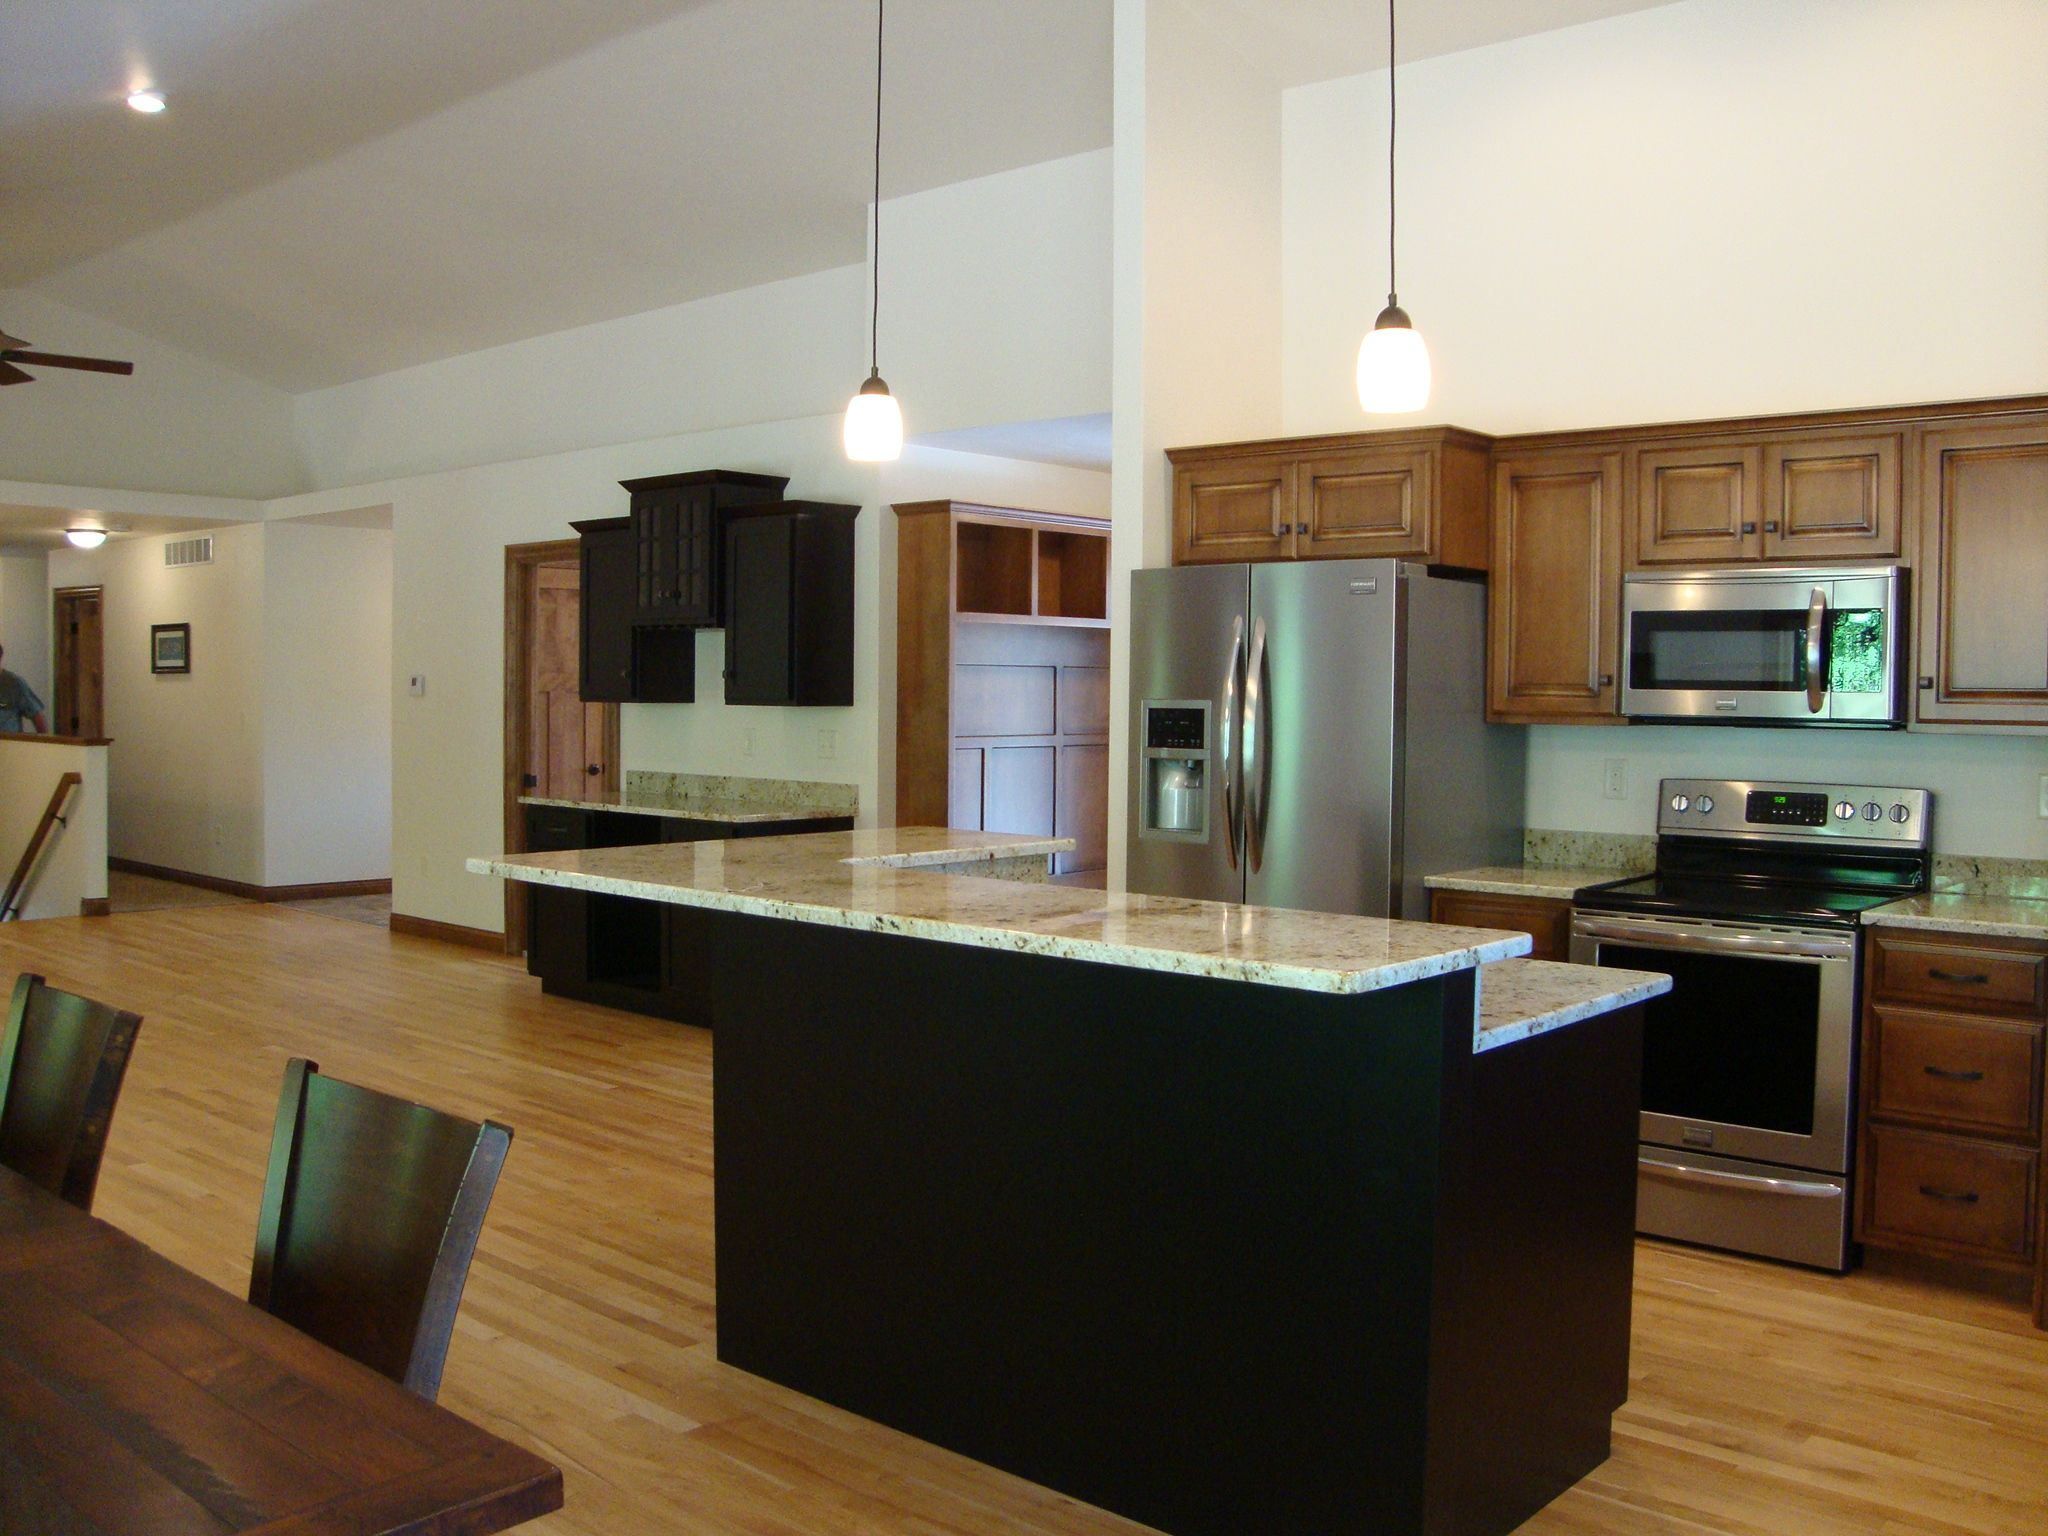 Images Of Rustic Mahogany Cabinets In Kitchens Colonial Cream Granite Counter Tops. Rustic Maple Wood